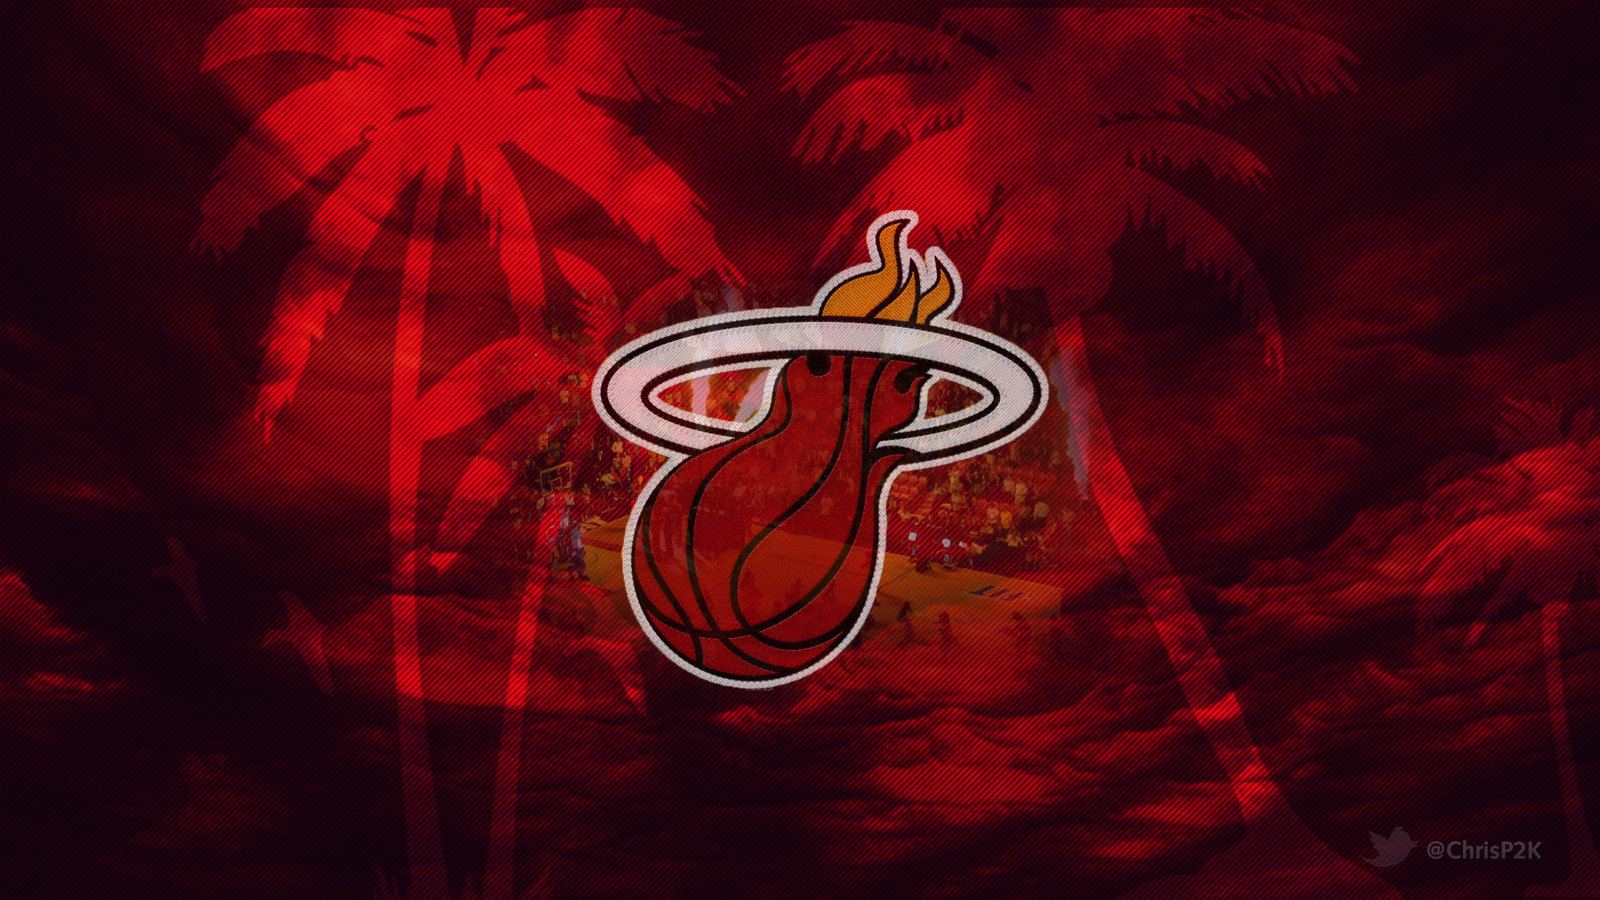 Miami heat wallpaper free hd wallpapers - Miami heat wallpaper android download ...